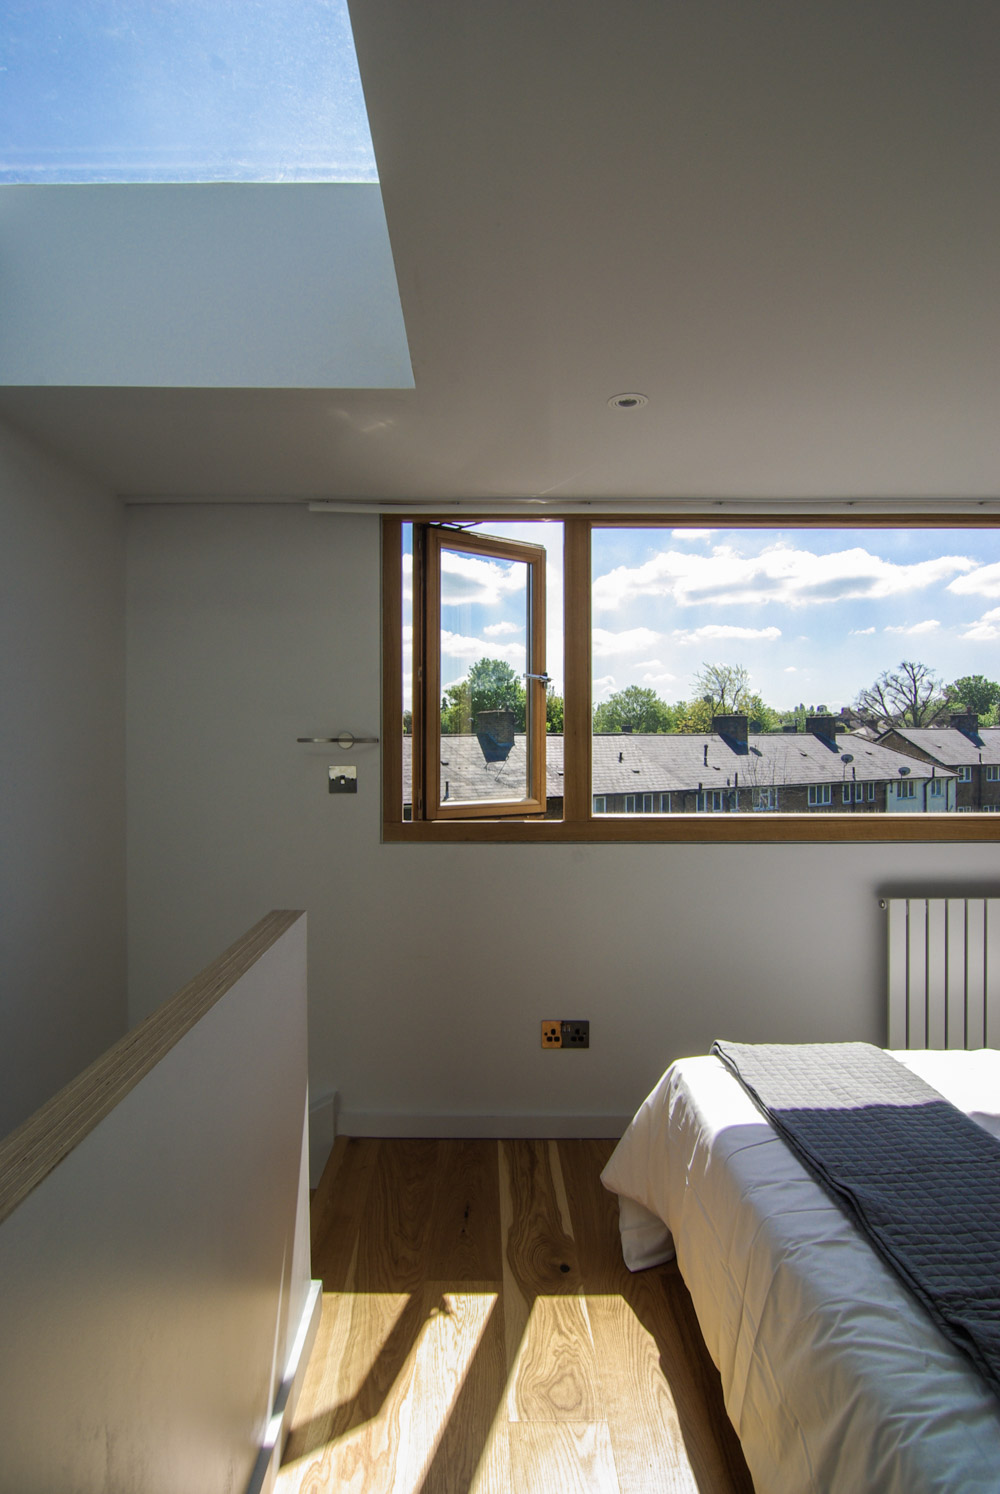 Loft extension bedroom filled with light coming through the roof light and oak windows.